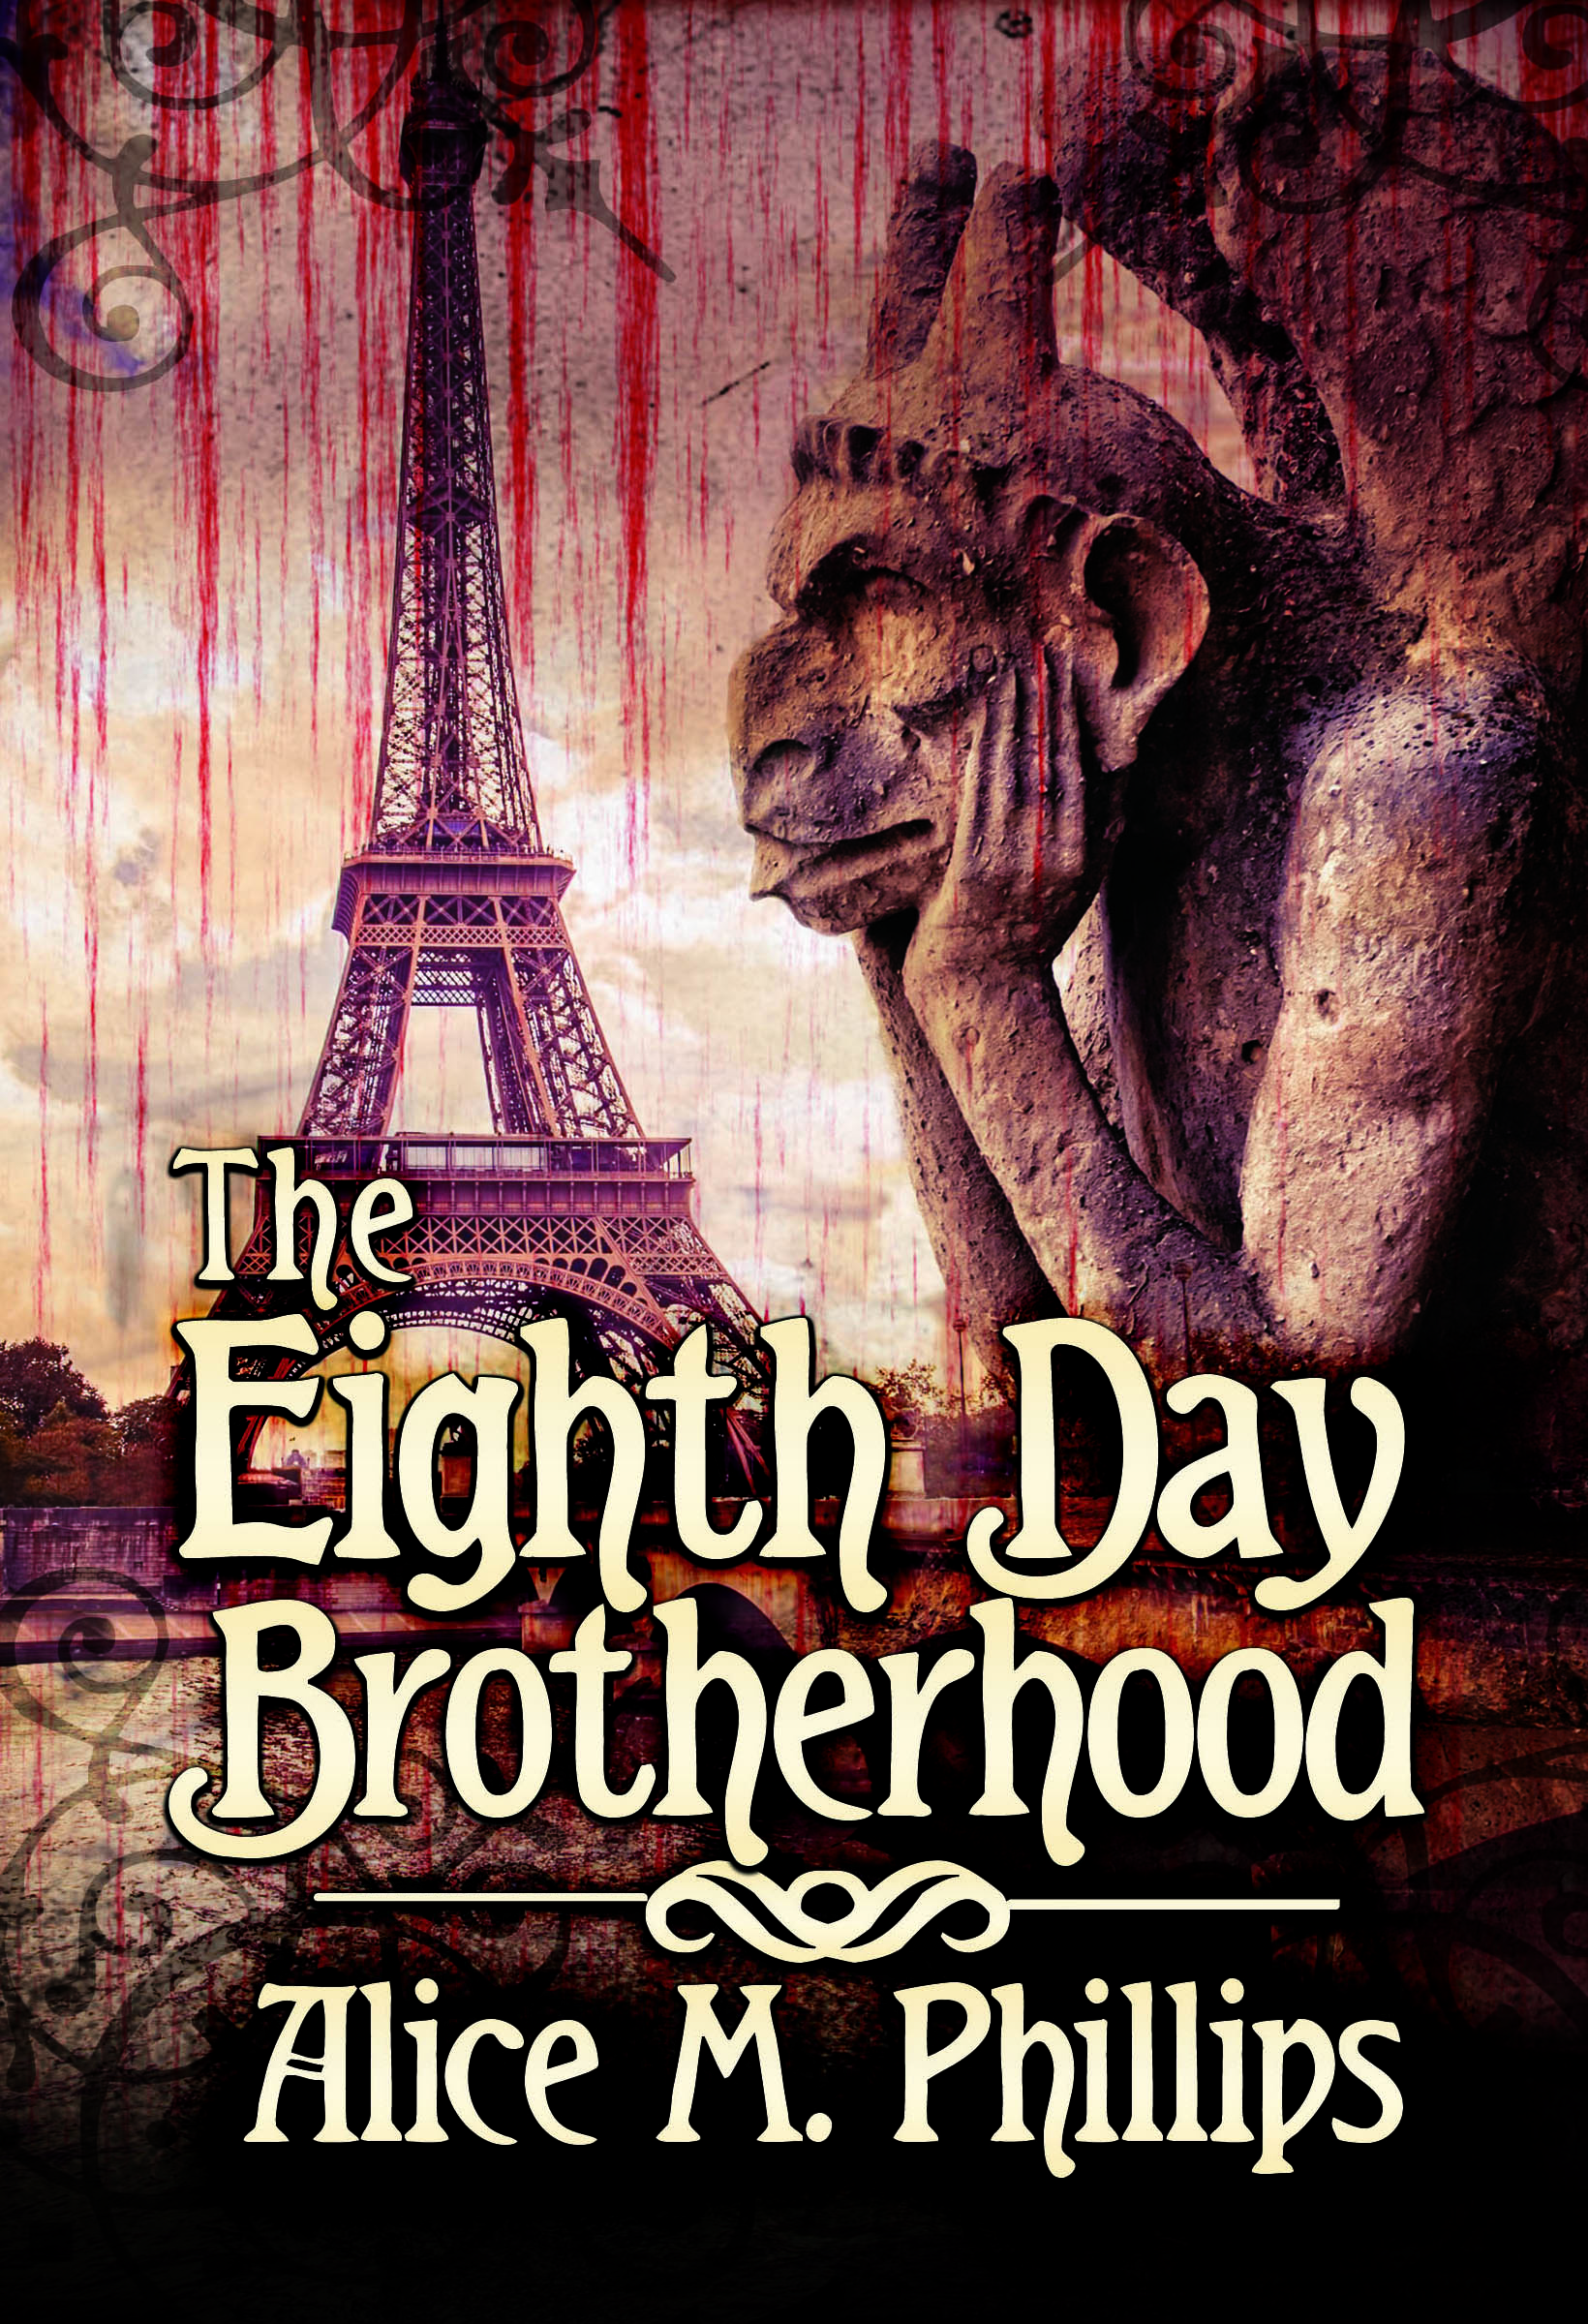 The Eighth Day Brotherhood cover image